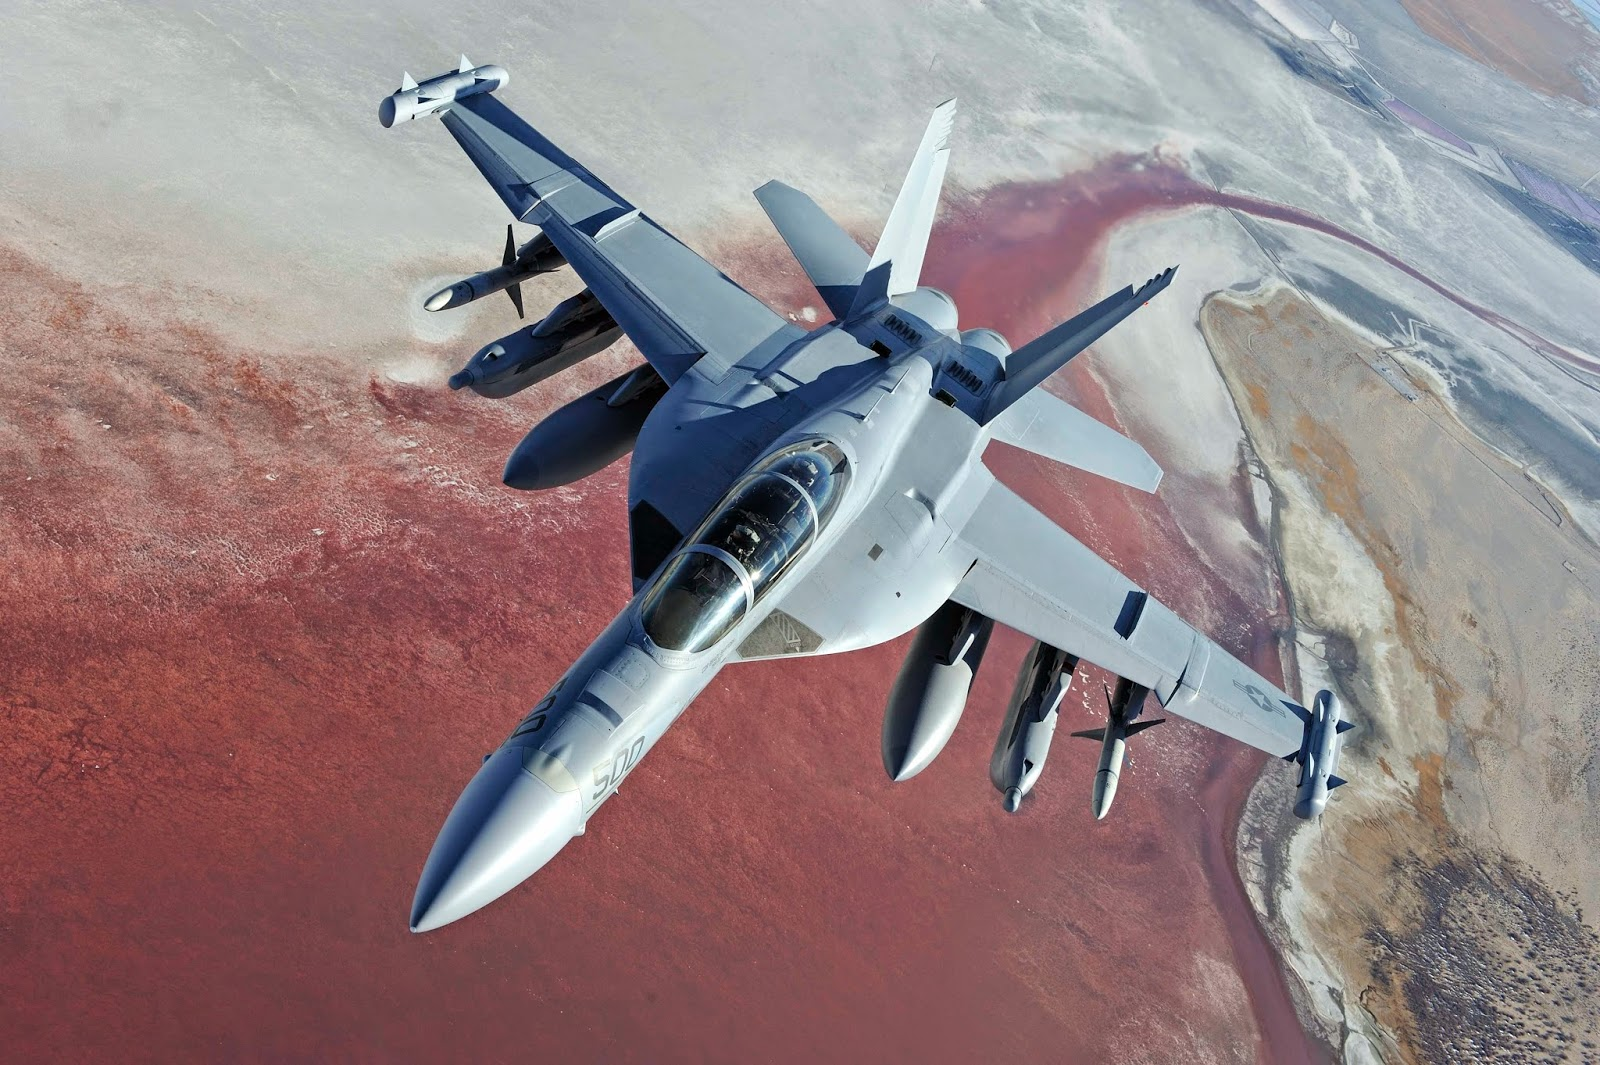 US Navy : Maintien de la production du Super Hornet sous perfusion